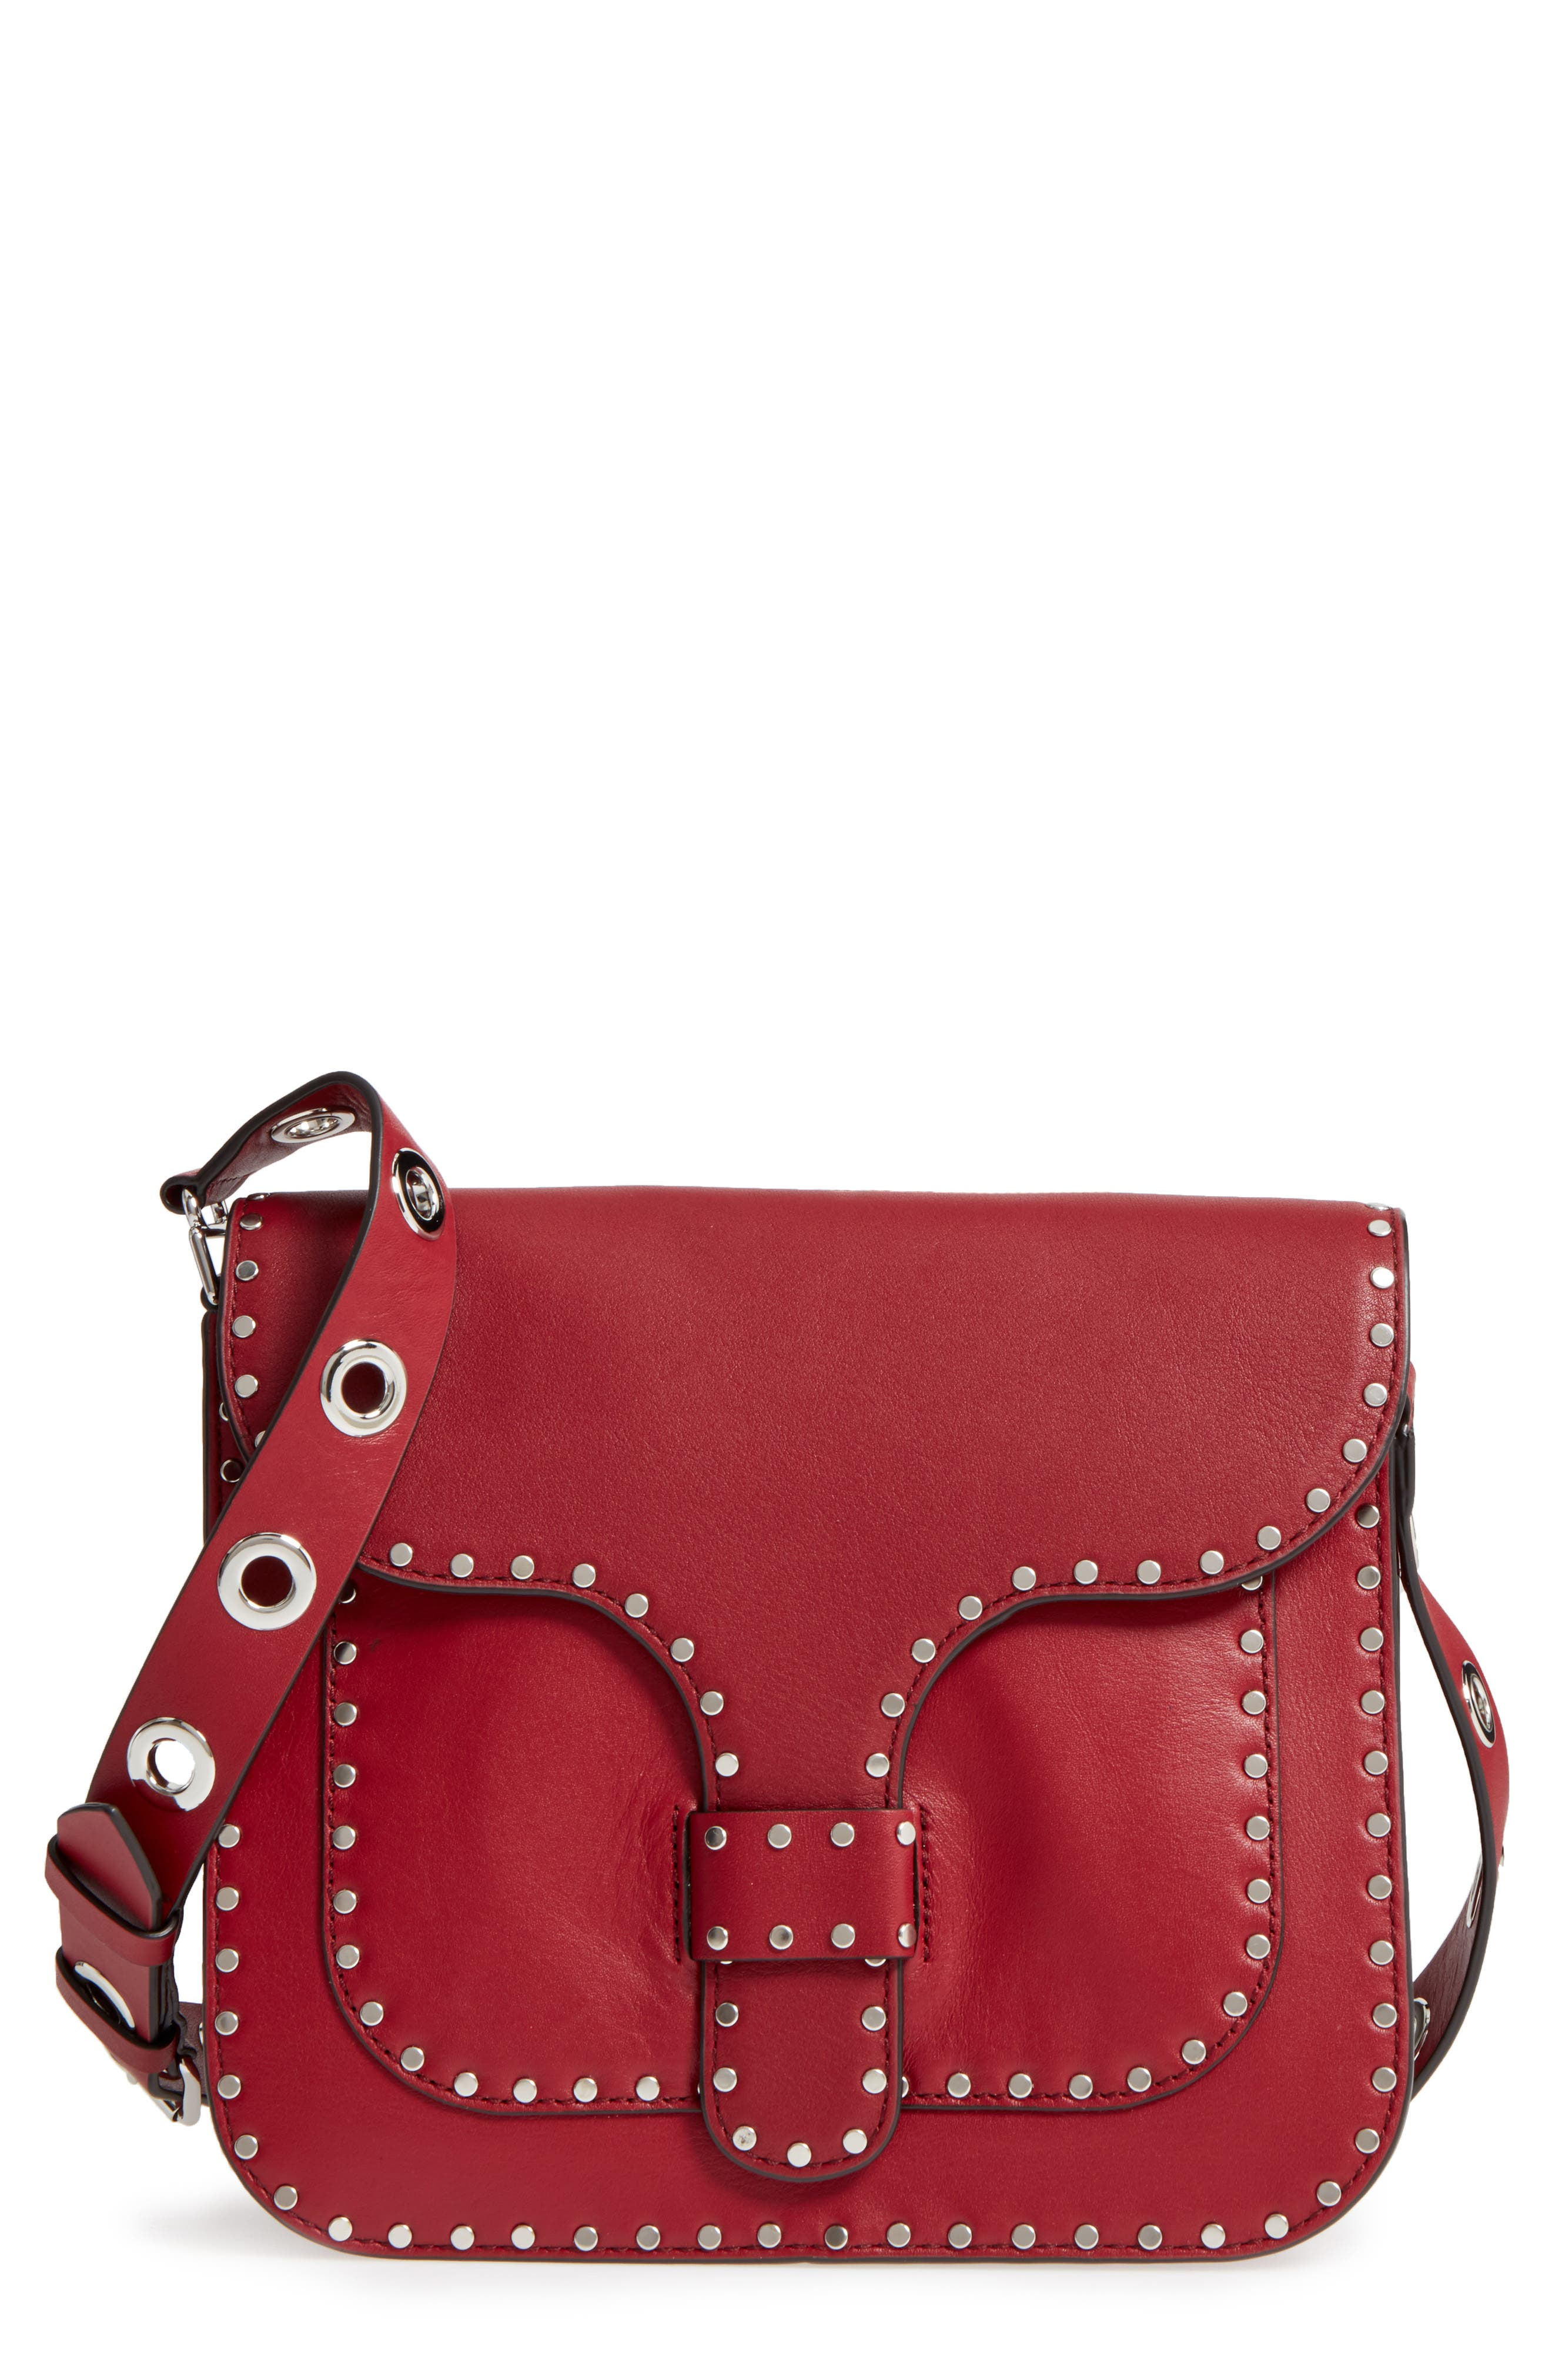 Main Image - Rebecca Minkoff Large Midnighter Leather Crossbody Bag